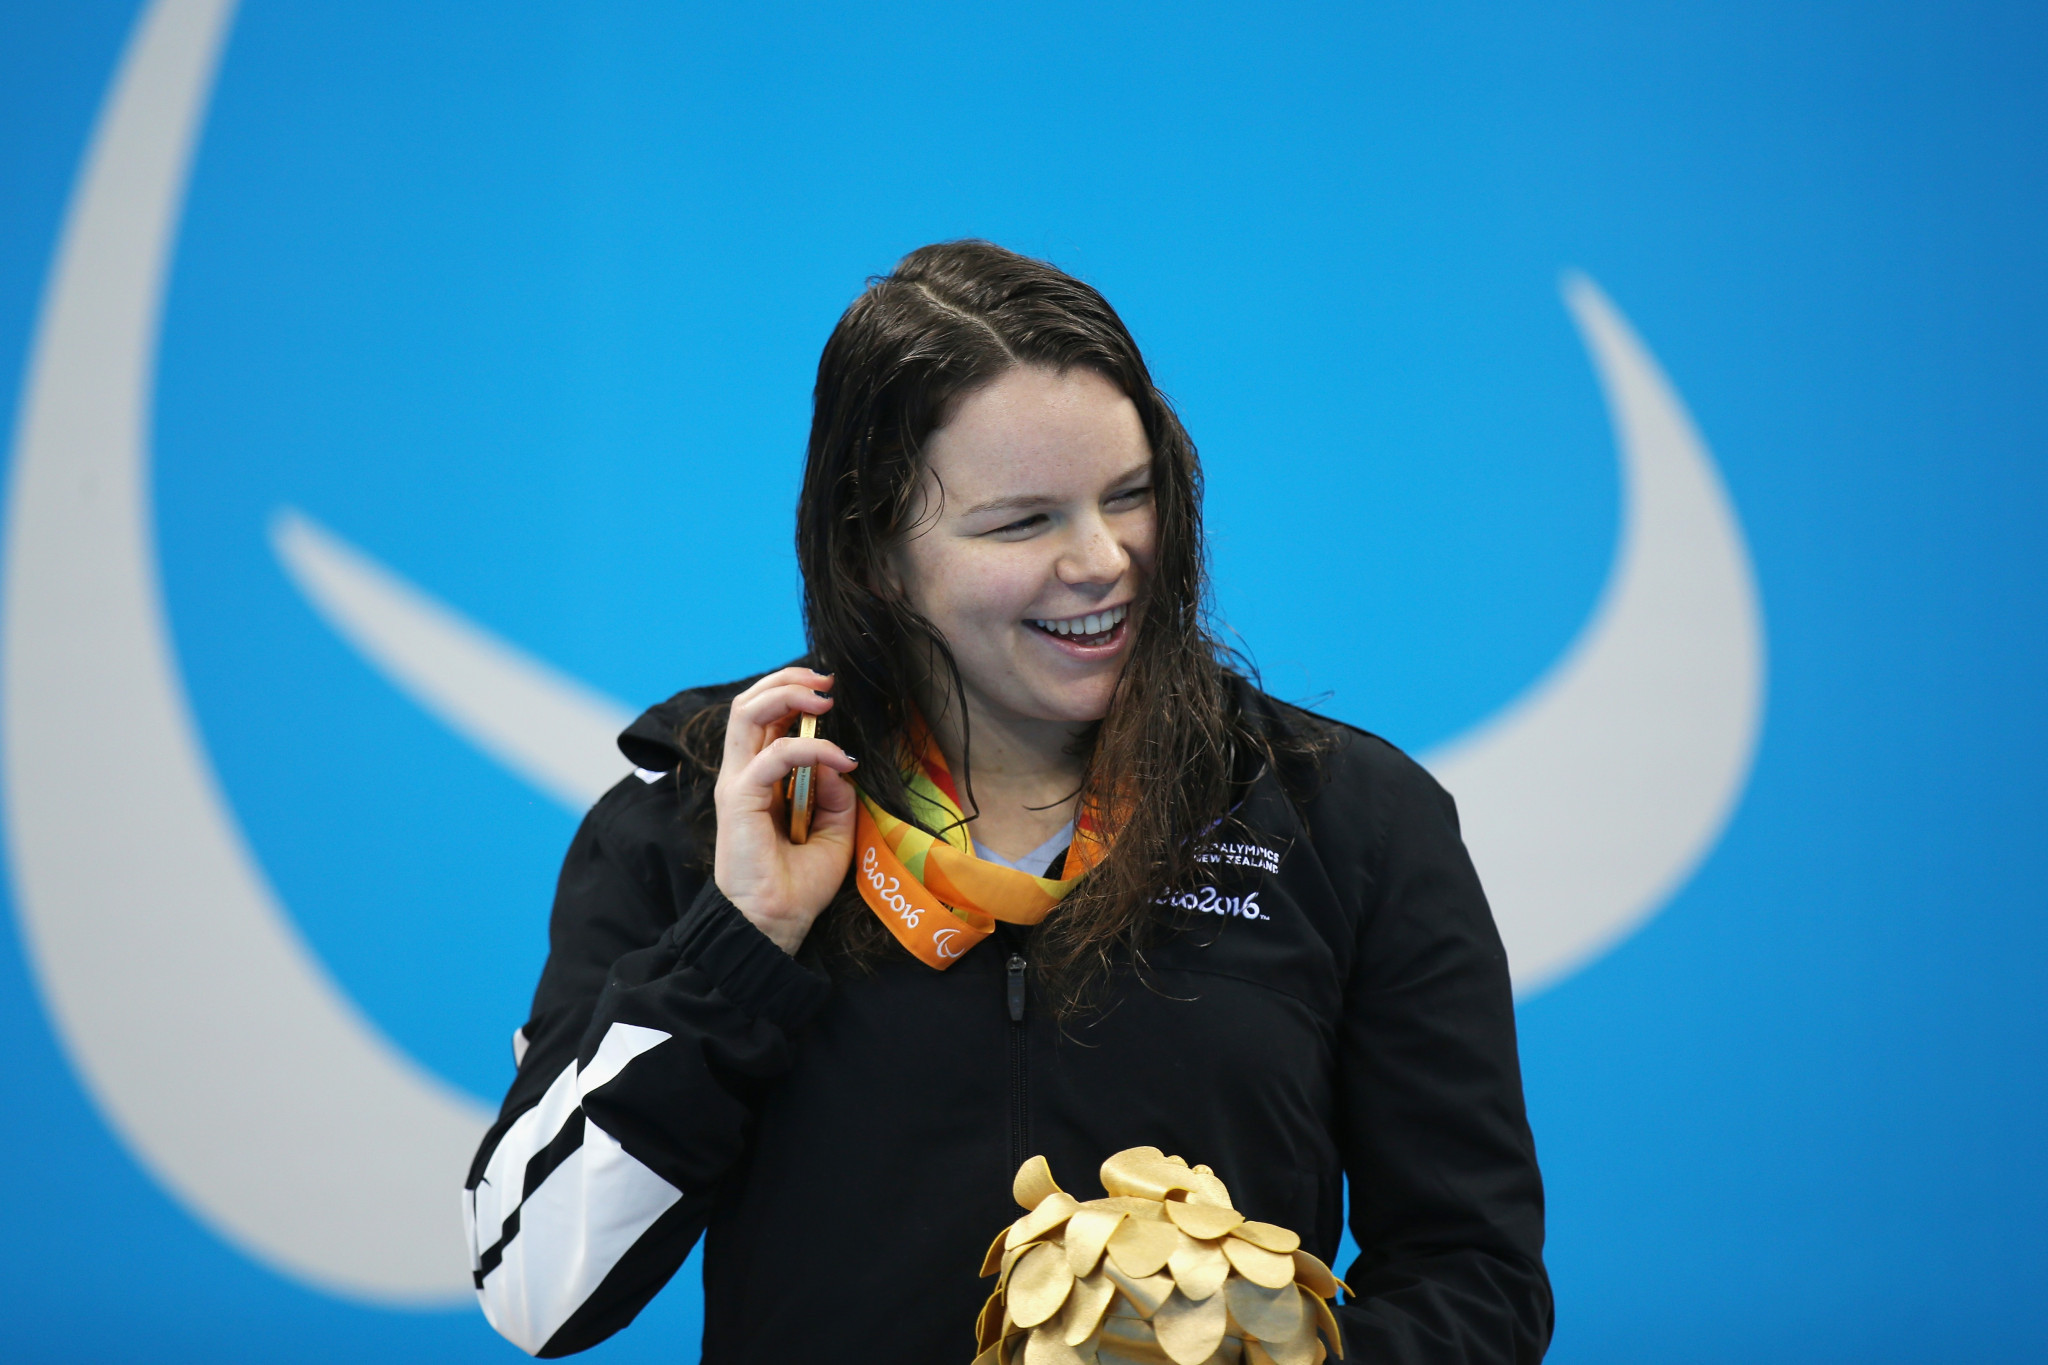 New Zealand's Fisher retires from high-performance Para-swimming